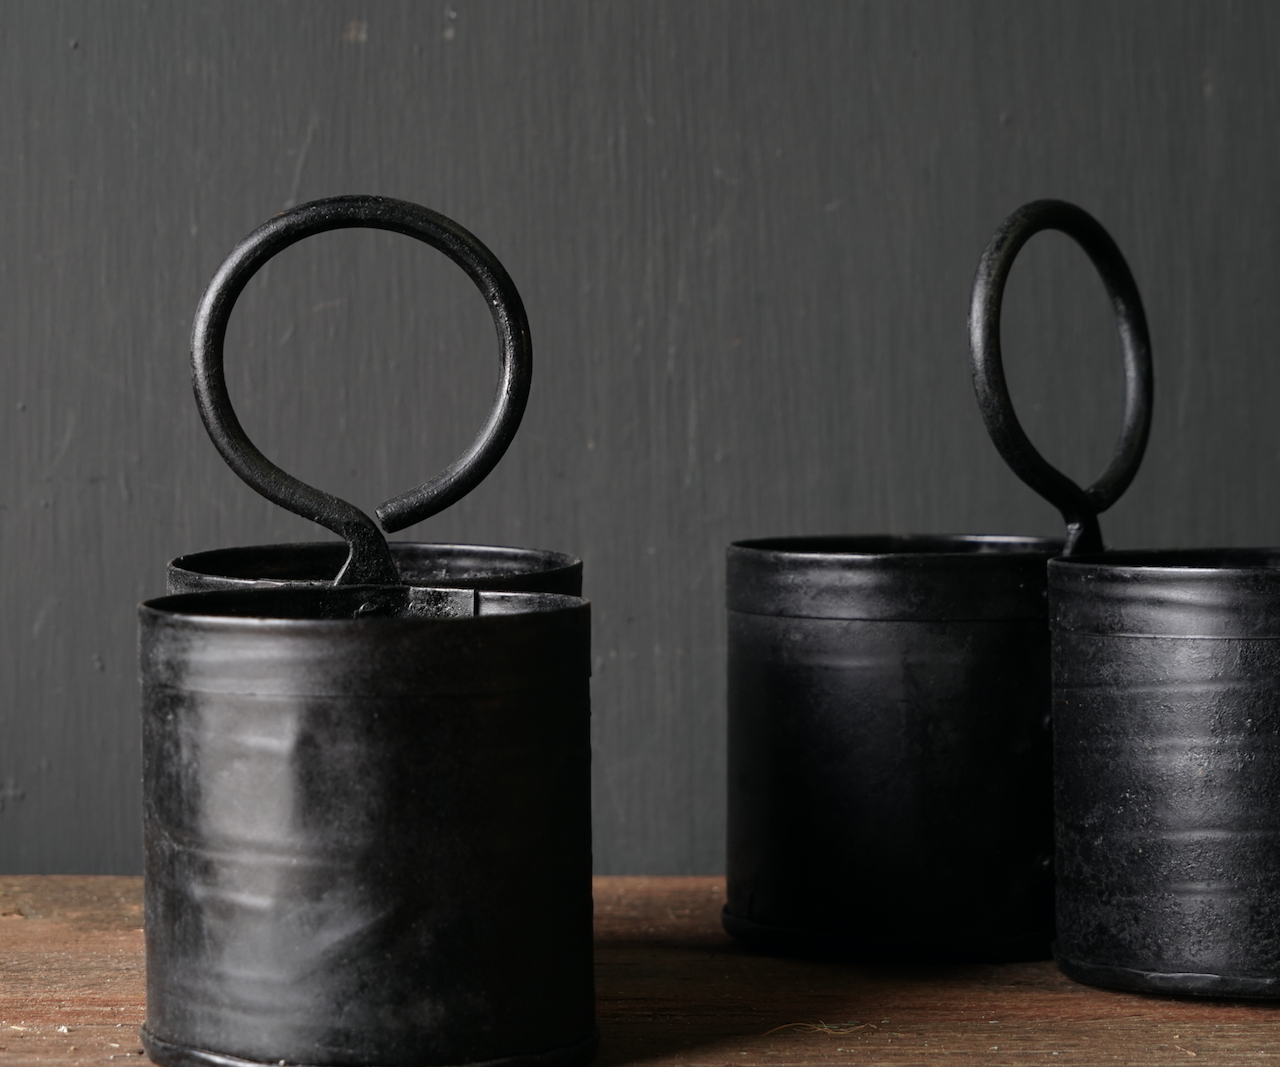 Black Iron cups 2 together with handle-4